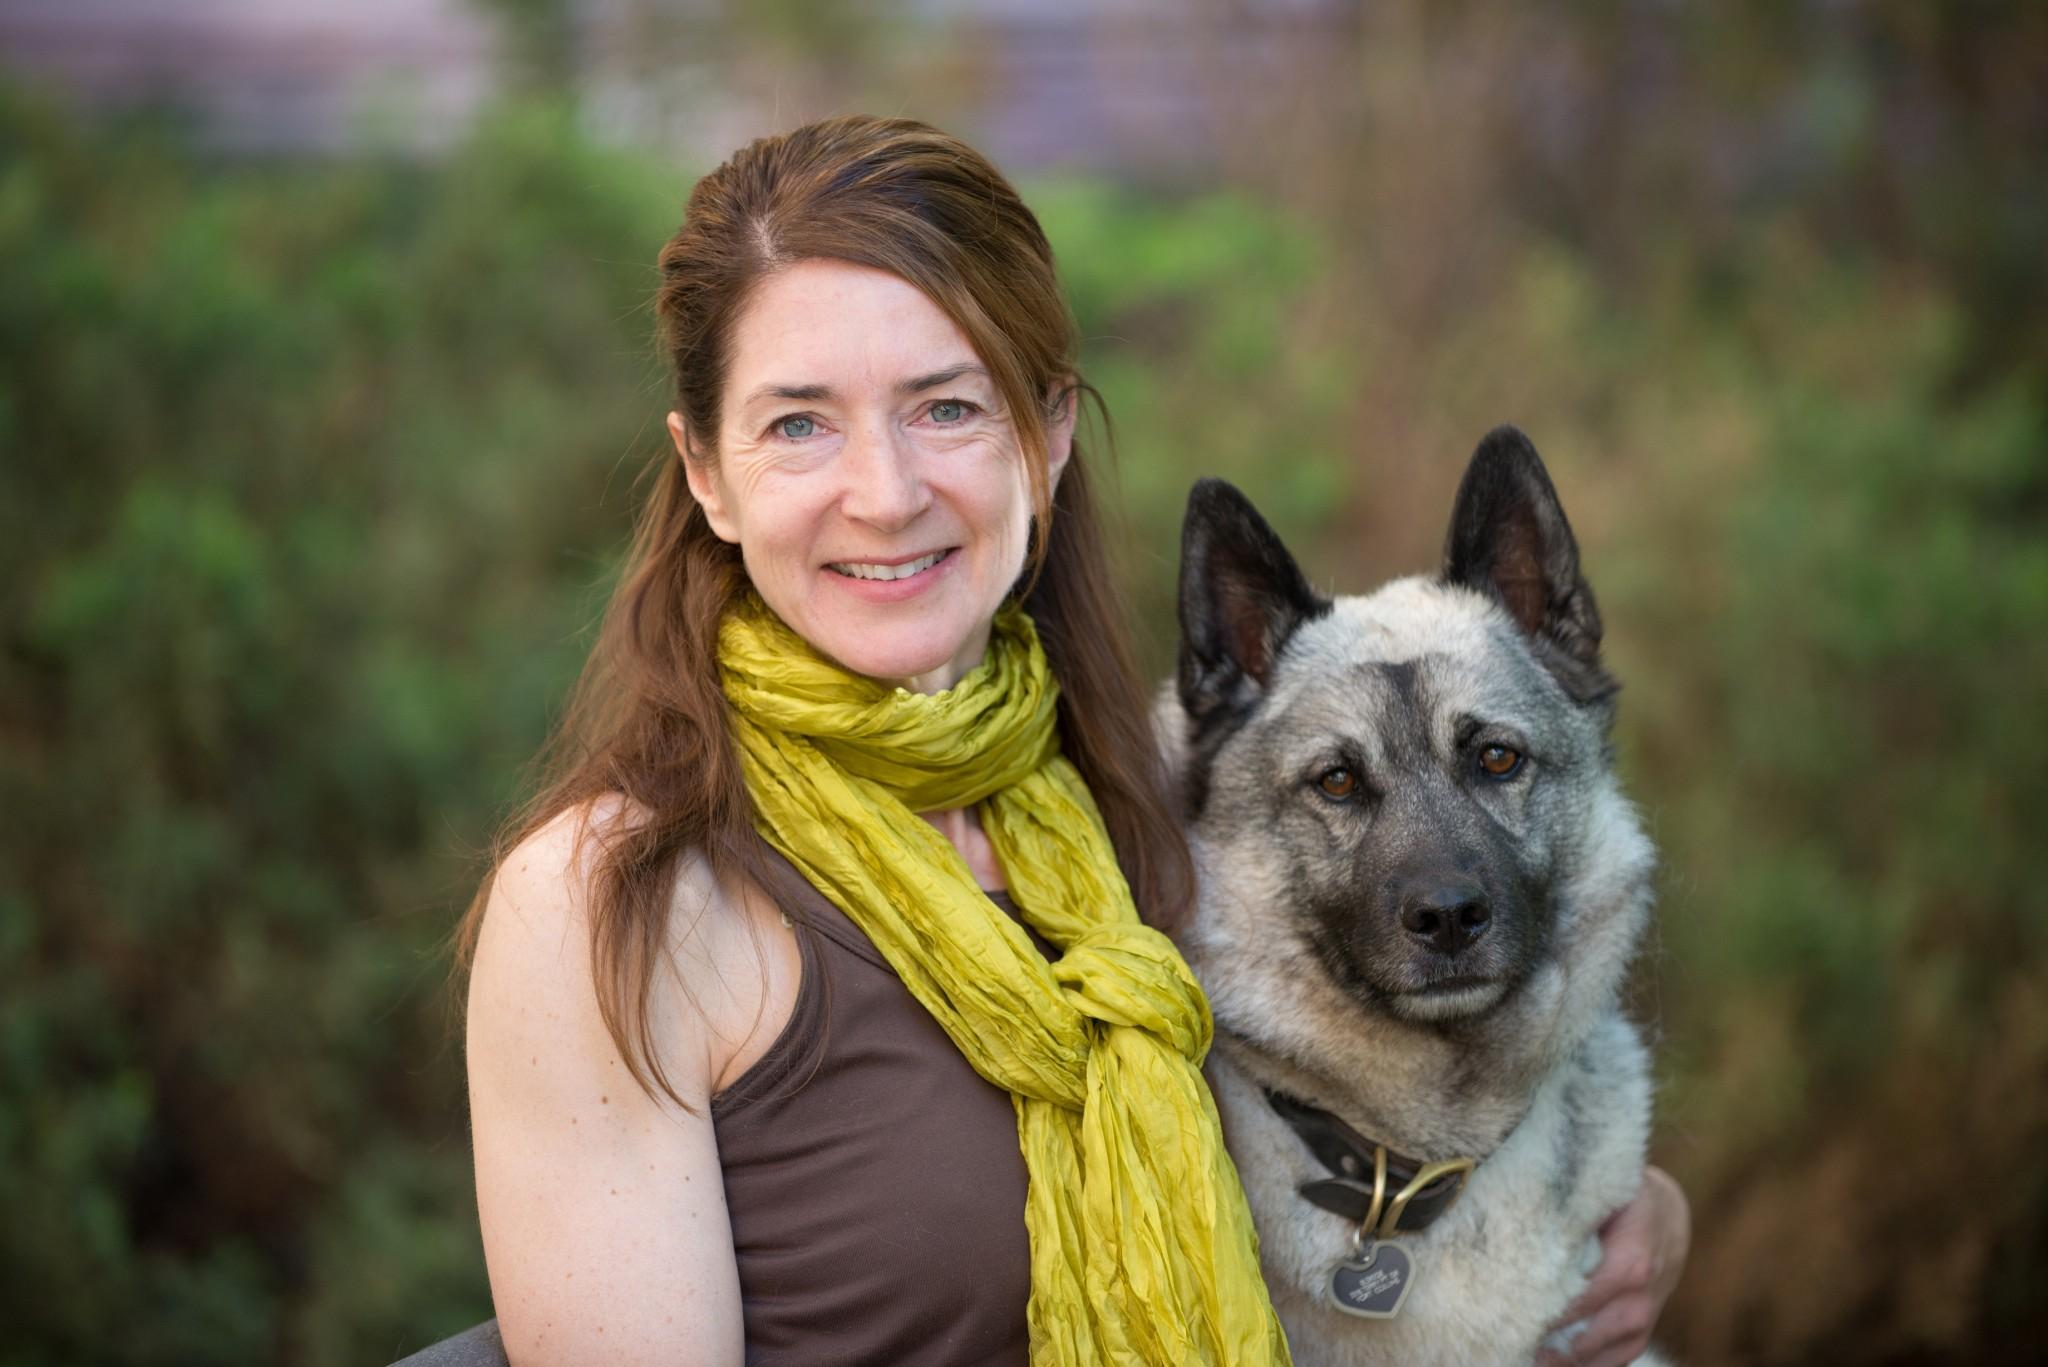 Dr. Melinda Frye is the first woman in the history of the university to serve as the associate dean of Professional Veterinary Medicine in the CSU College of Veterinary Medicine and Biomedical Sciences. (Photo Courtesy: CSU).